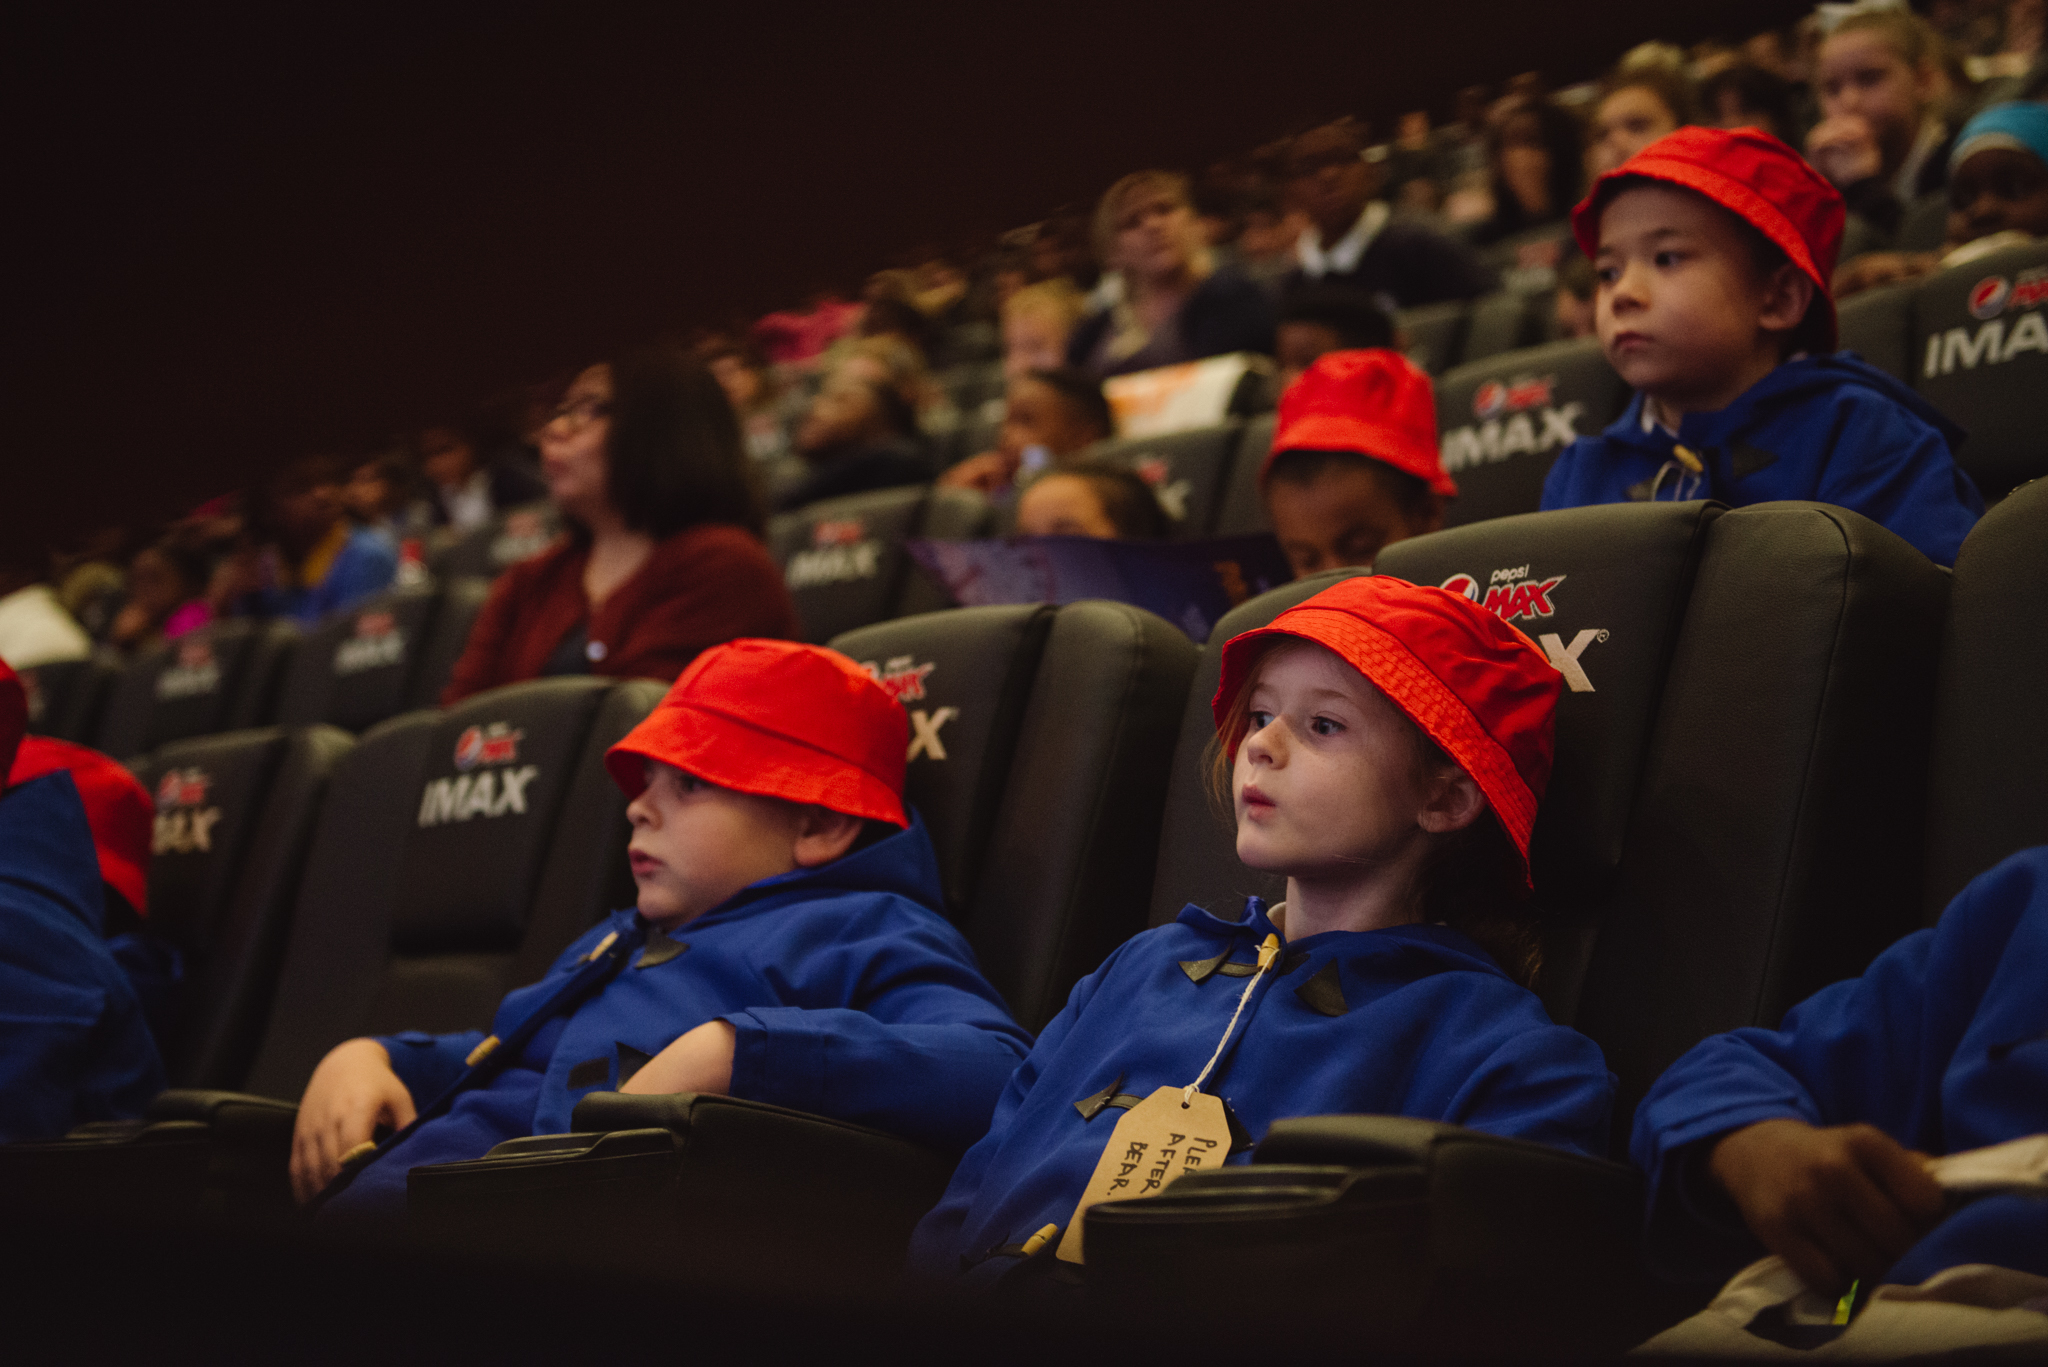 Free cinema for all